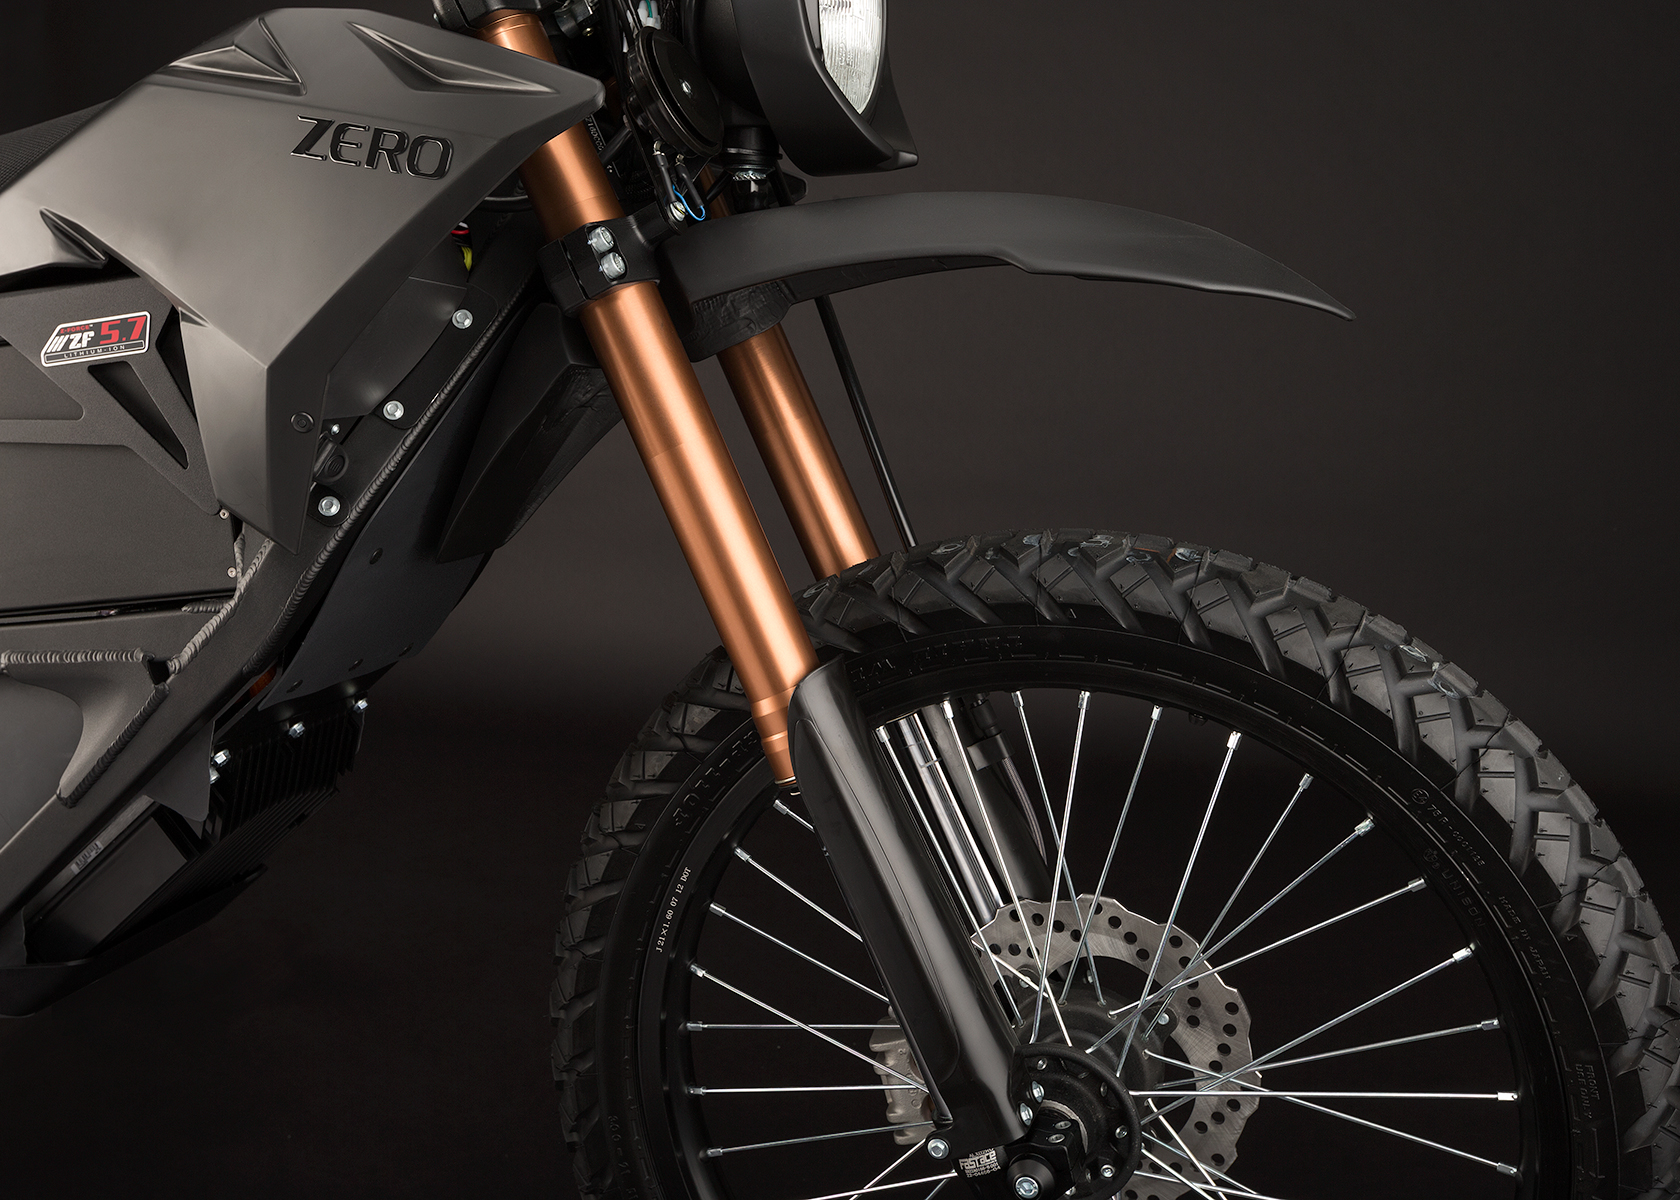 2013 Zero FX Electric Motorcycle: Front Fork